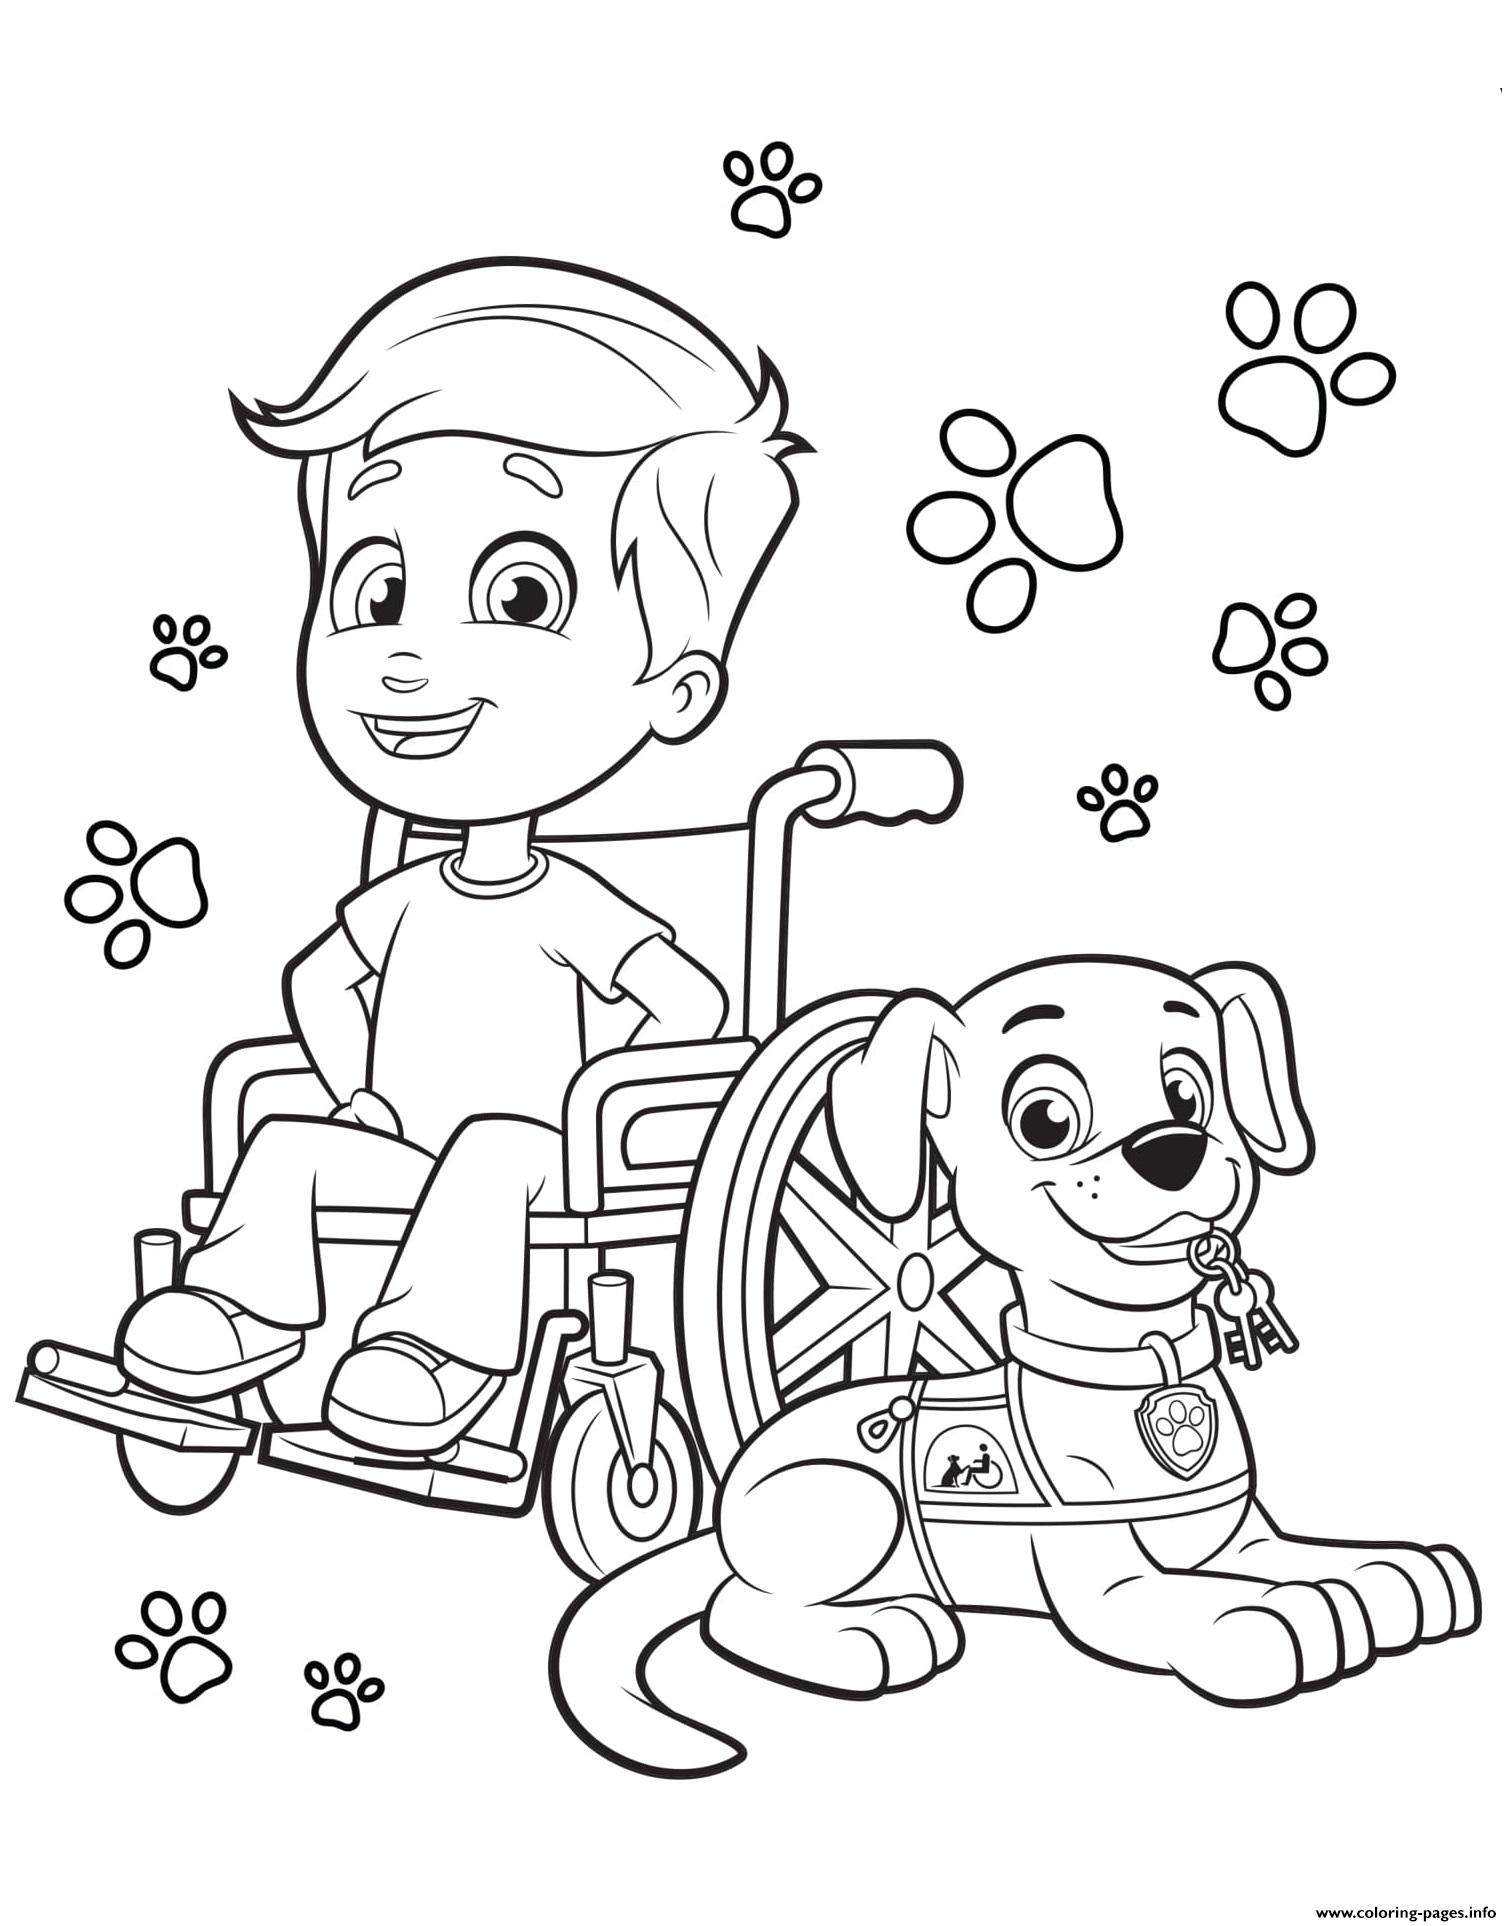 Canine Companions For Independence Dog And Kid Coloring